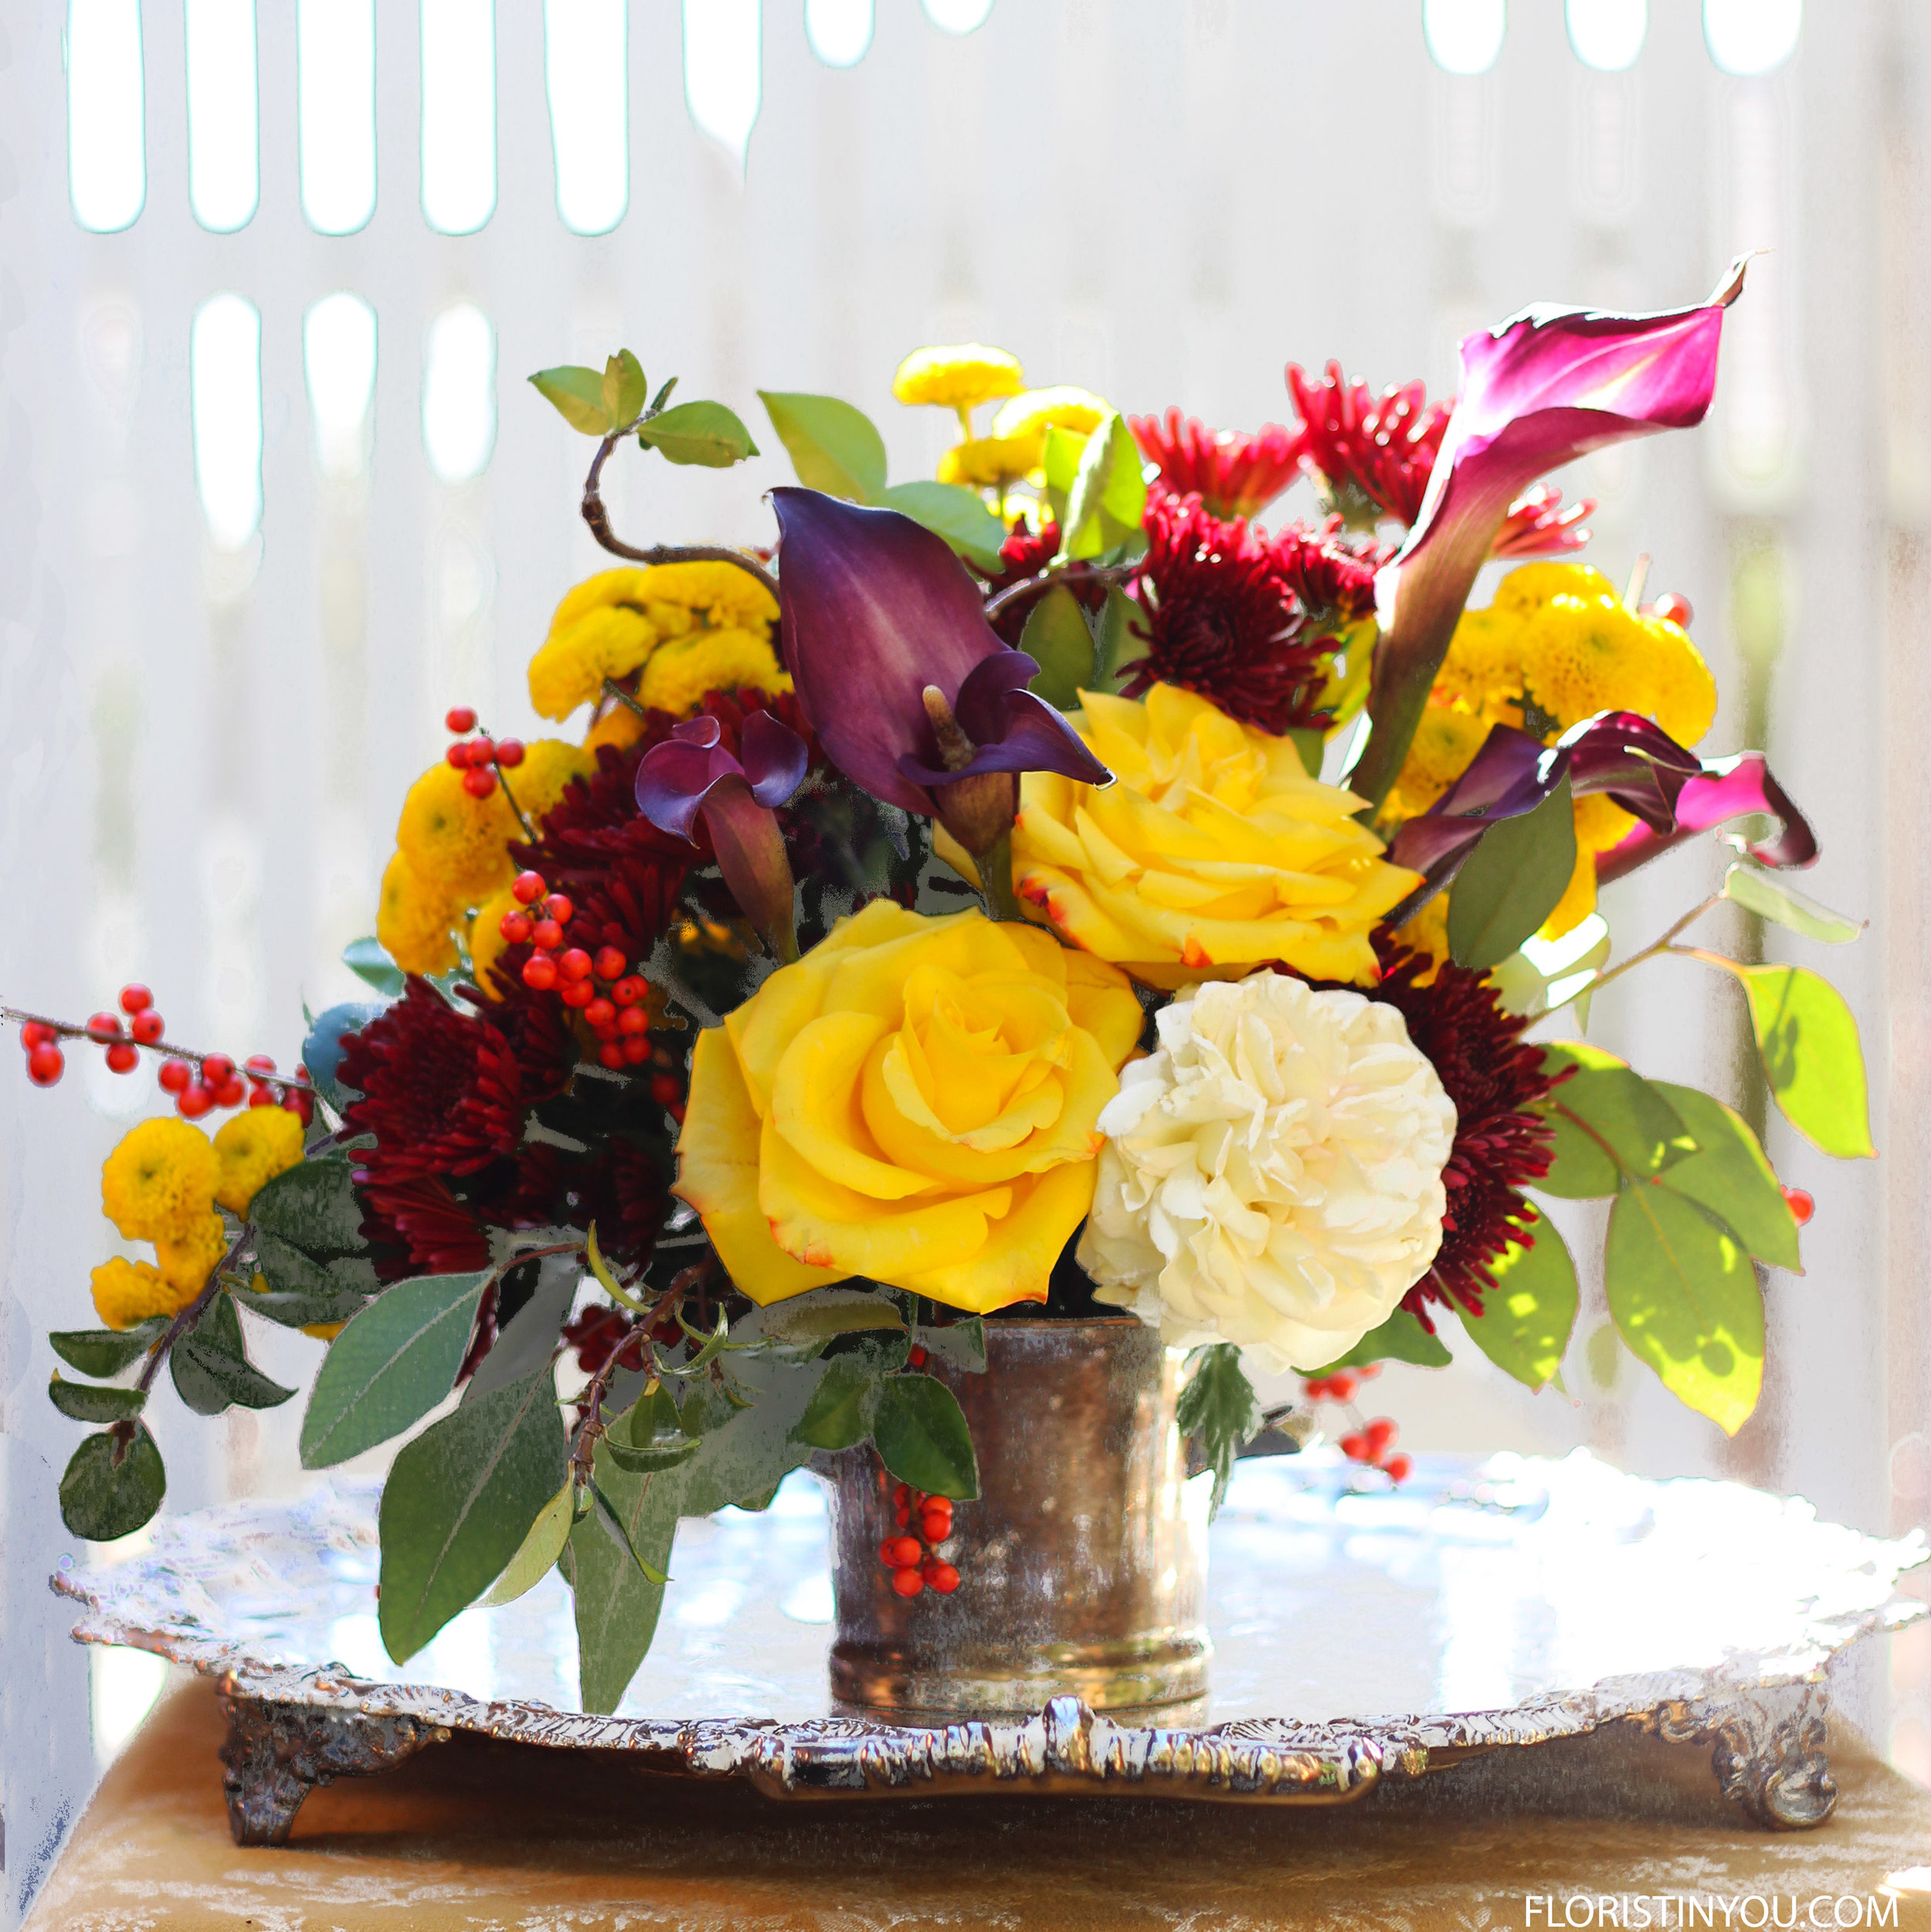 """Thanksgiving Centerpiece                     Normal   0           false   false   false     EN-US   JA   X-NONE                                                                                                                                                                                                                                                                                                                                                                              /* Style Definitions */ table.MsoNormalTable {mso-style-name:""""Table Normal""""; mso-tstyle-rowband-size:0; mso-tstyle-colband-size:0; mso-style-noshow:yes; mso-style-priority:99; mso-style-parent:""""""""; mso-padding-alt:0in 5.4pt 0in 5.4pt; mso-para-margin:0in; mso-para-margin-bottom:.0001pt; mso-pagination:widow-orphan; font-size:12.0pt; font-family:Cambria; mso-ascii-font-family:Cambria; mso-ascii-theme-font:minor-latin; mso-hansi-font-family:Cambria; mso-hansi-theme-font:minor-latin;}"""